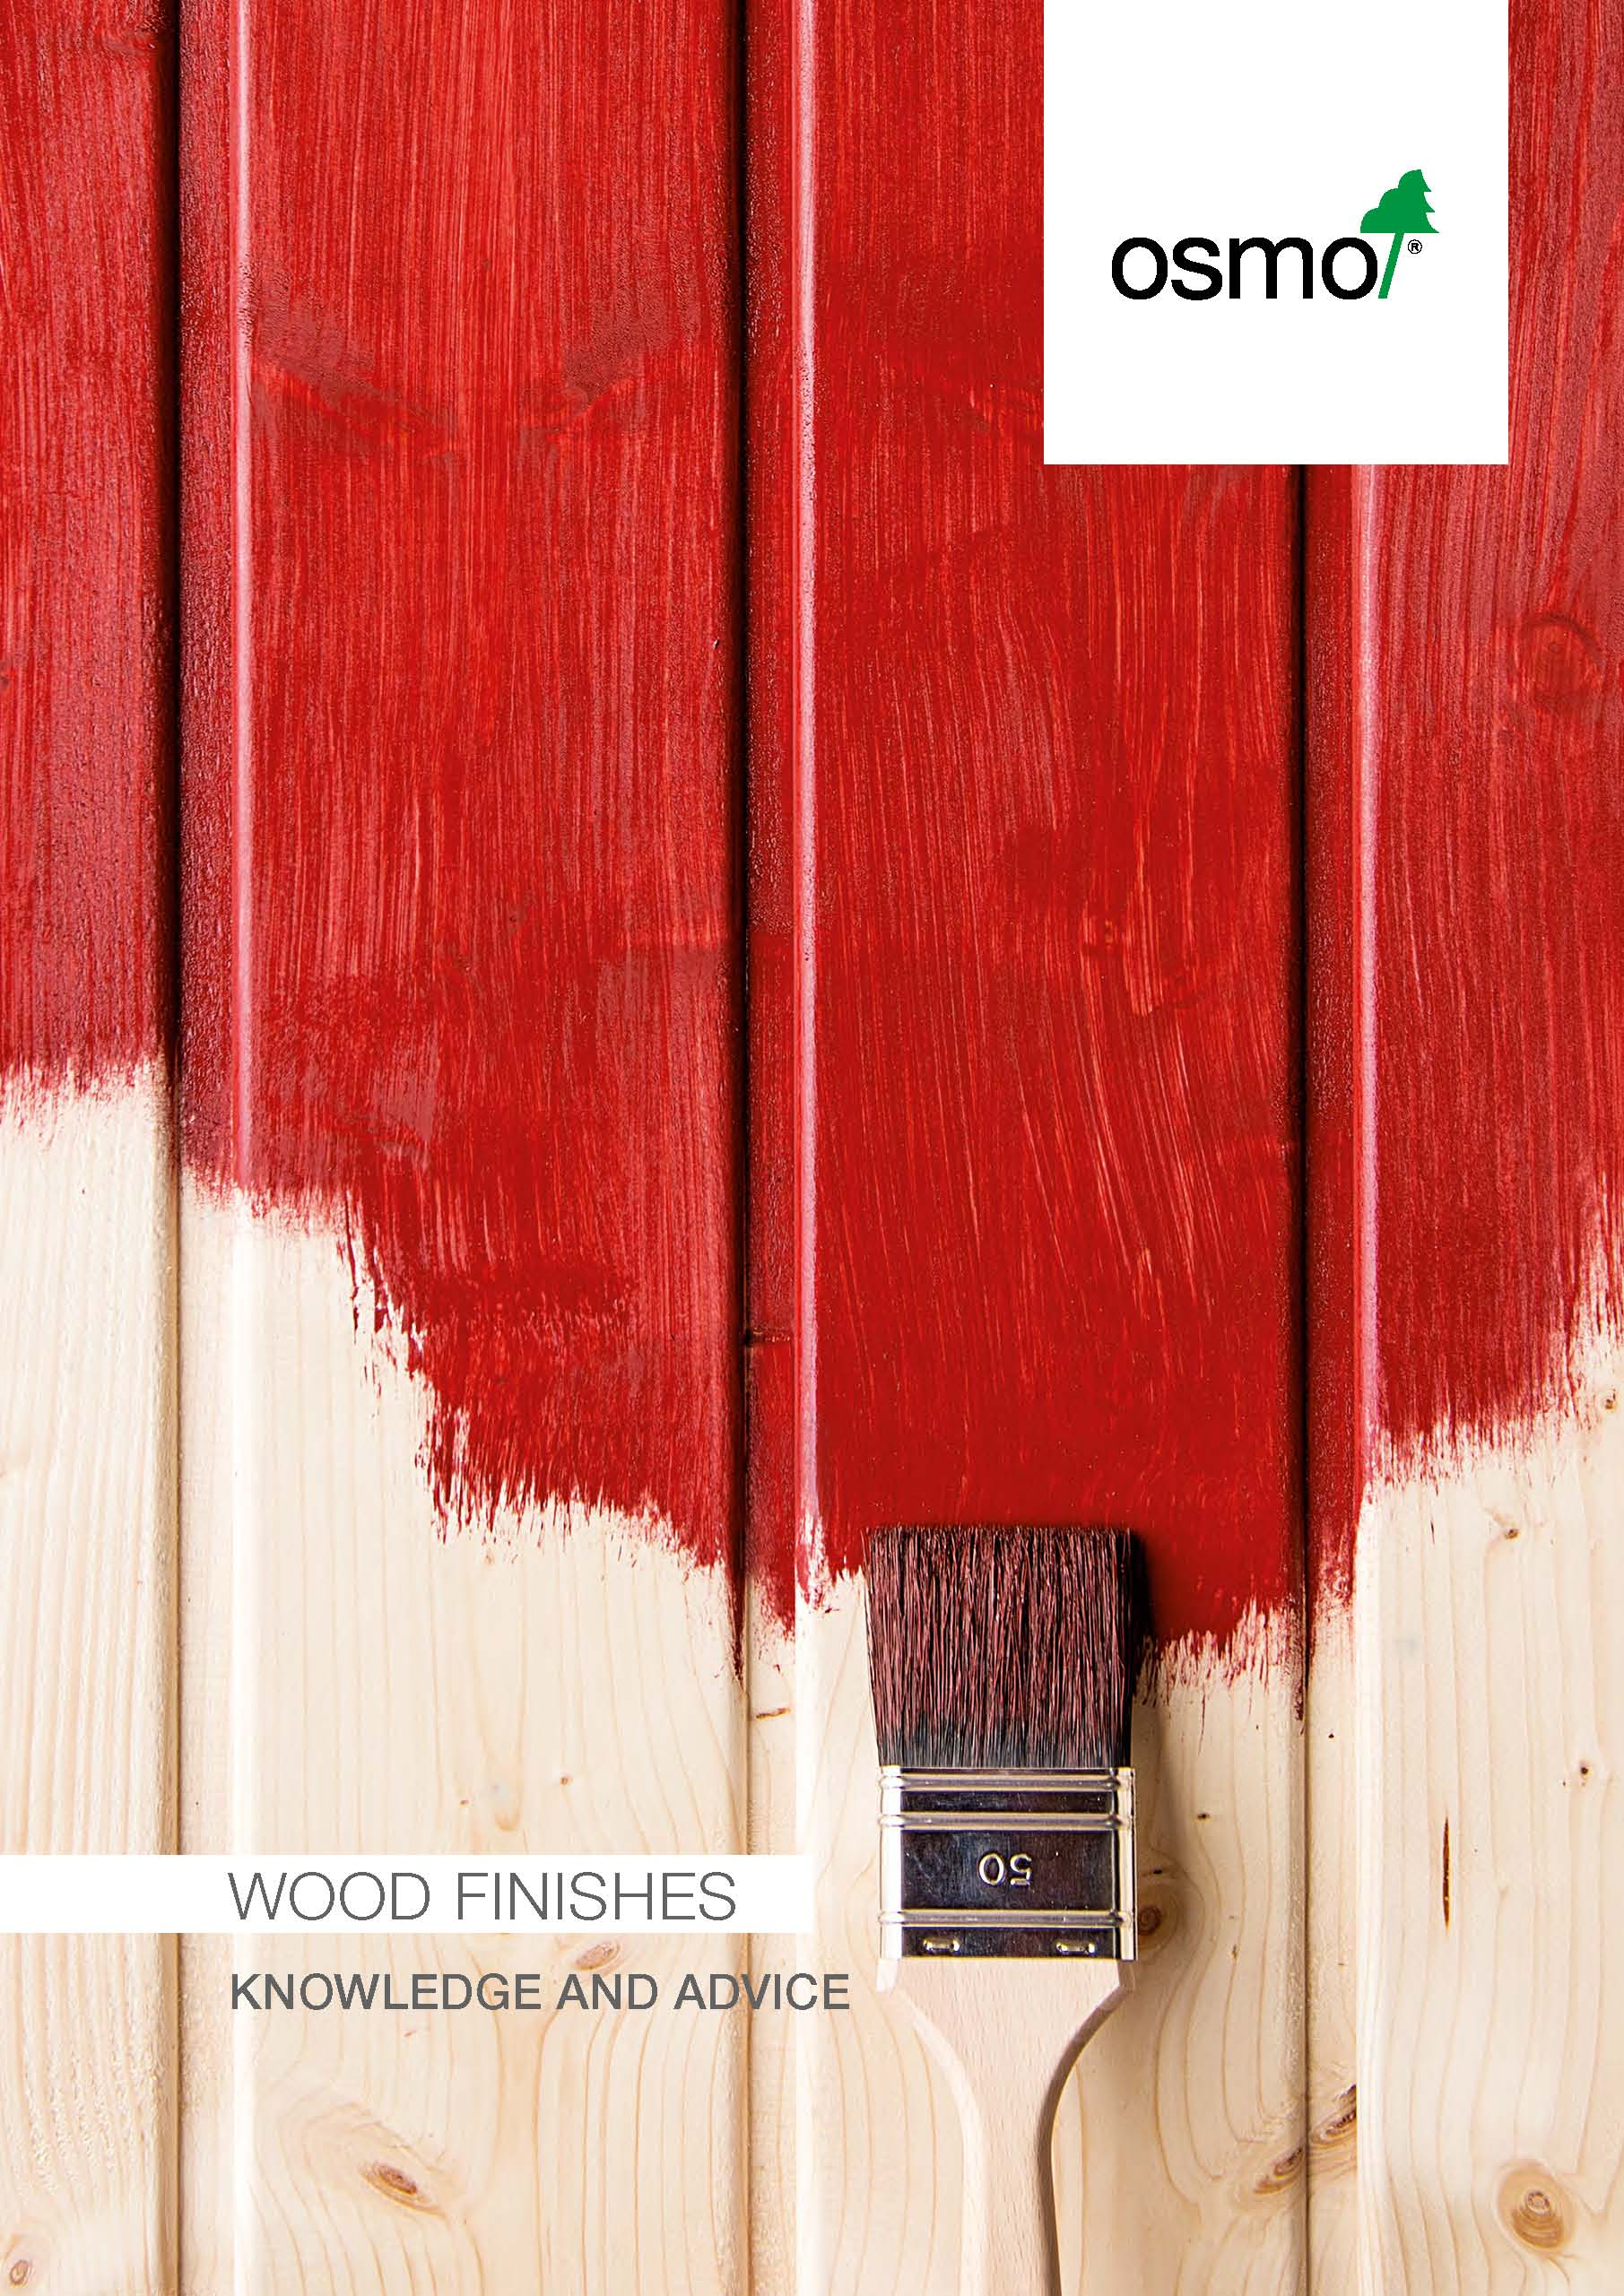 Osmo Wood Finishes - Knowledge and Advice 2020 cover image